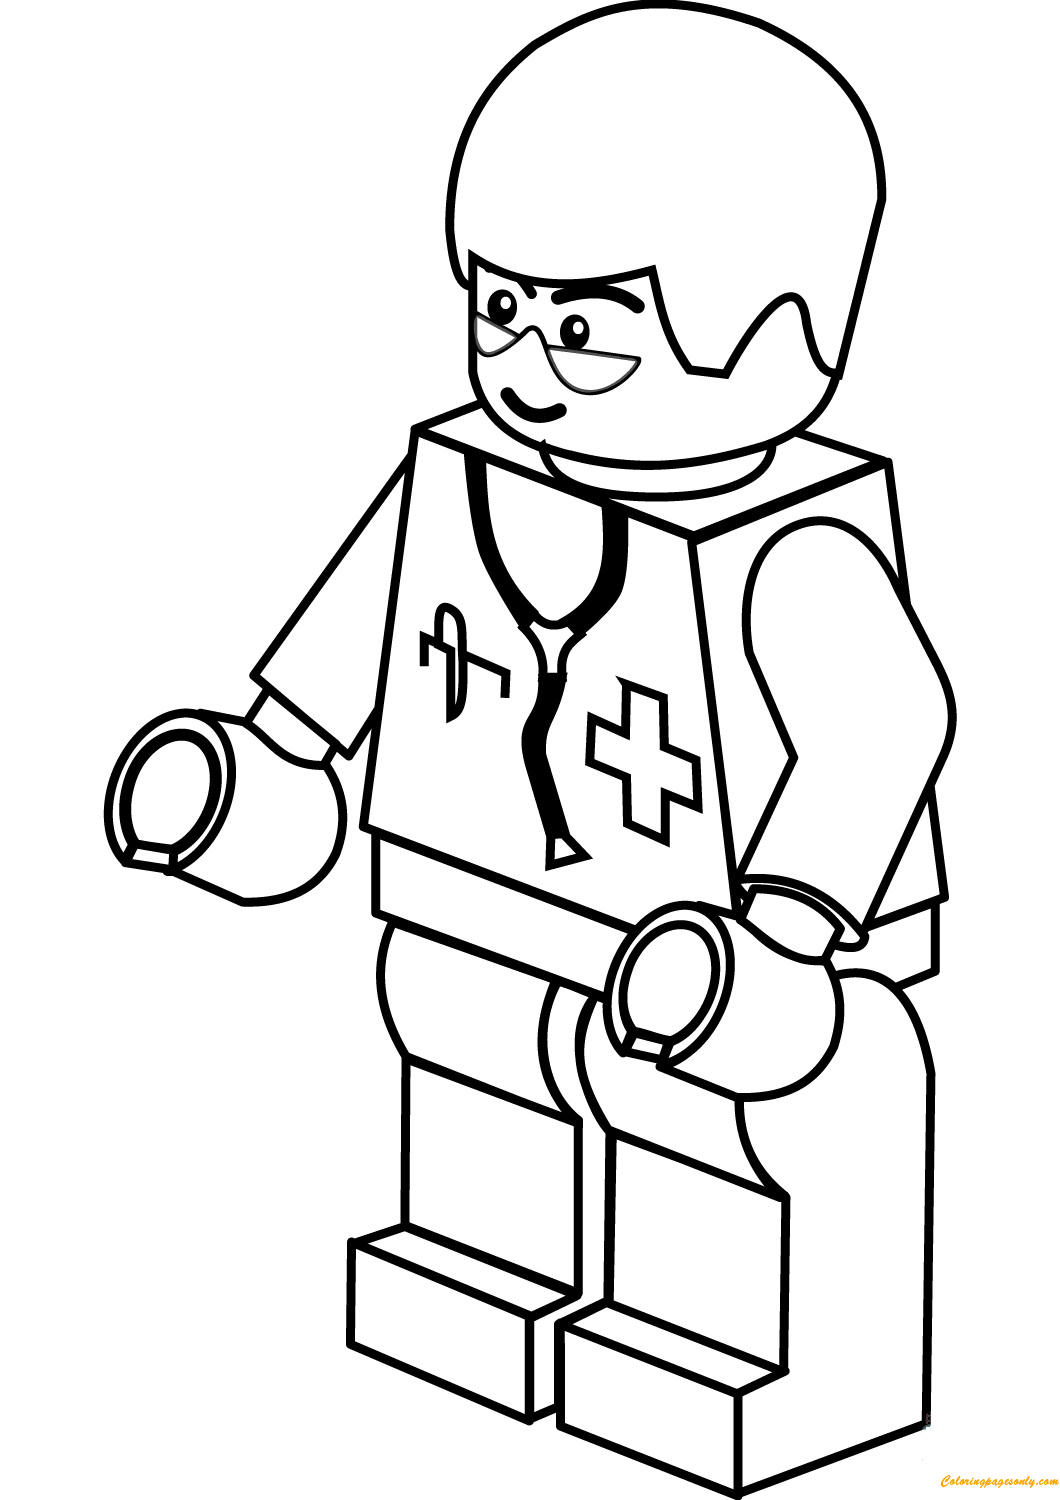 lego city undercover chase mccain coloring pages sketch coloring page Harry Potter LEGO Coloring Pages  Chase Mccain Coloring Pages